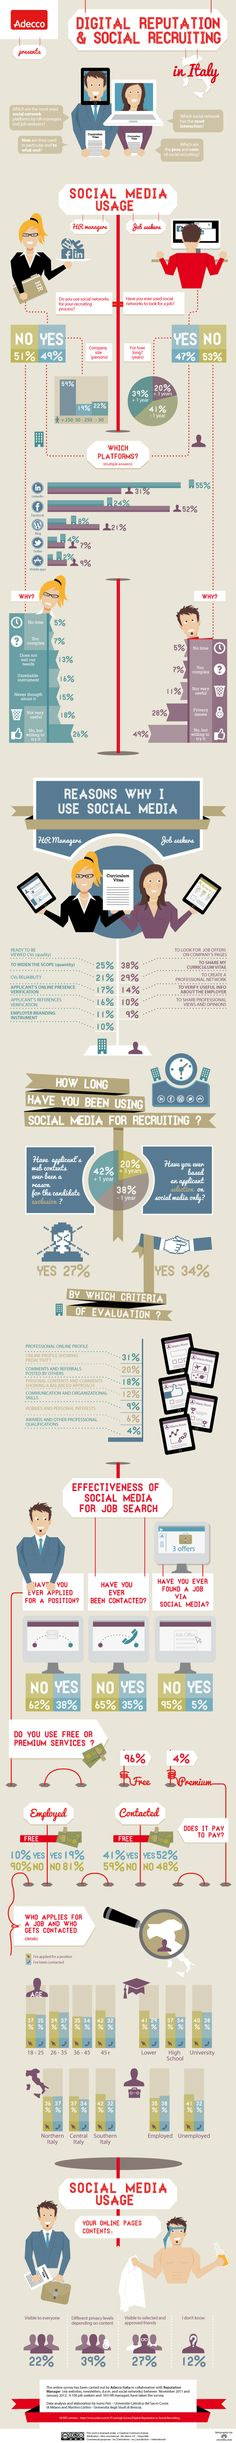 Digital Reputation and Social Recruiting in Italy - Adecco